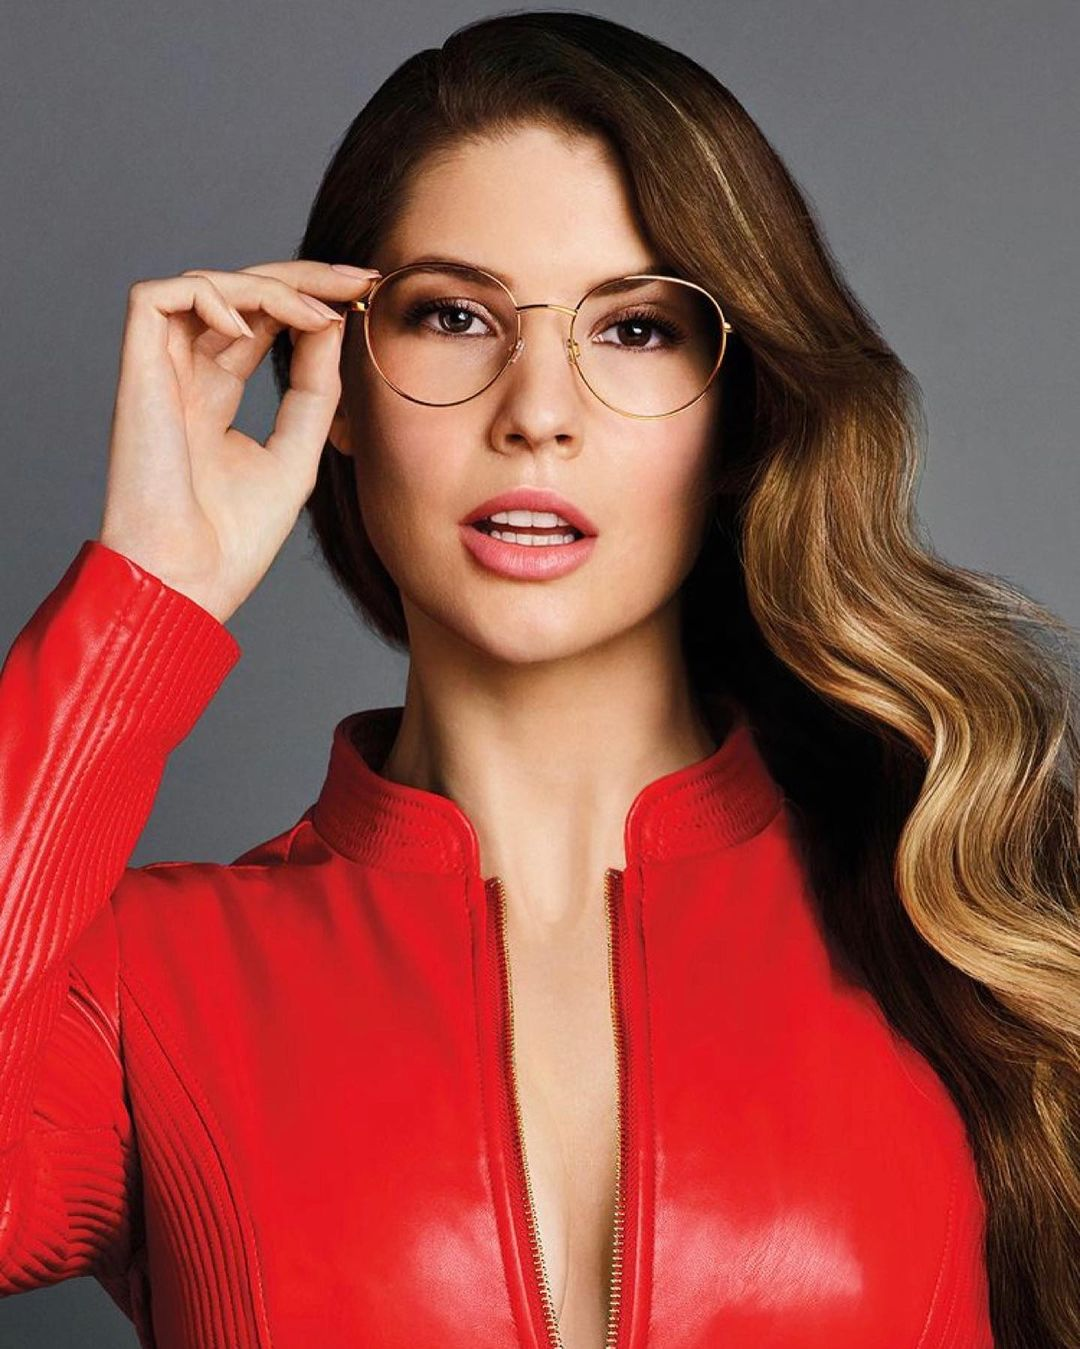 Hot photos of Playboy model and actress Amanda Cerny will take your breath away 27